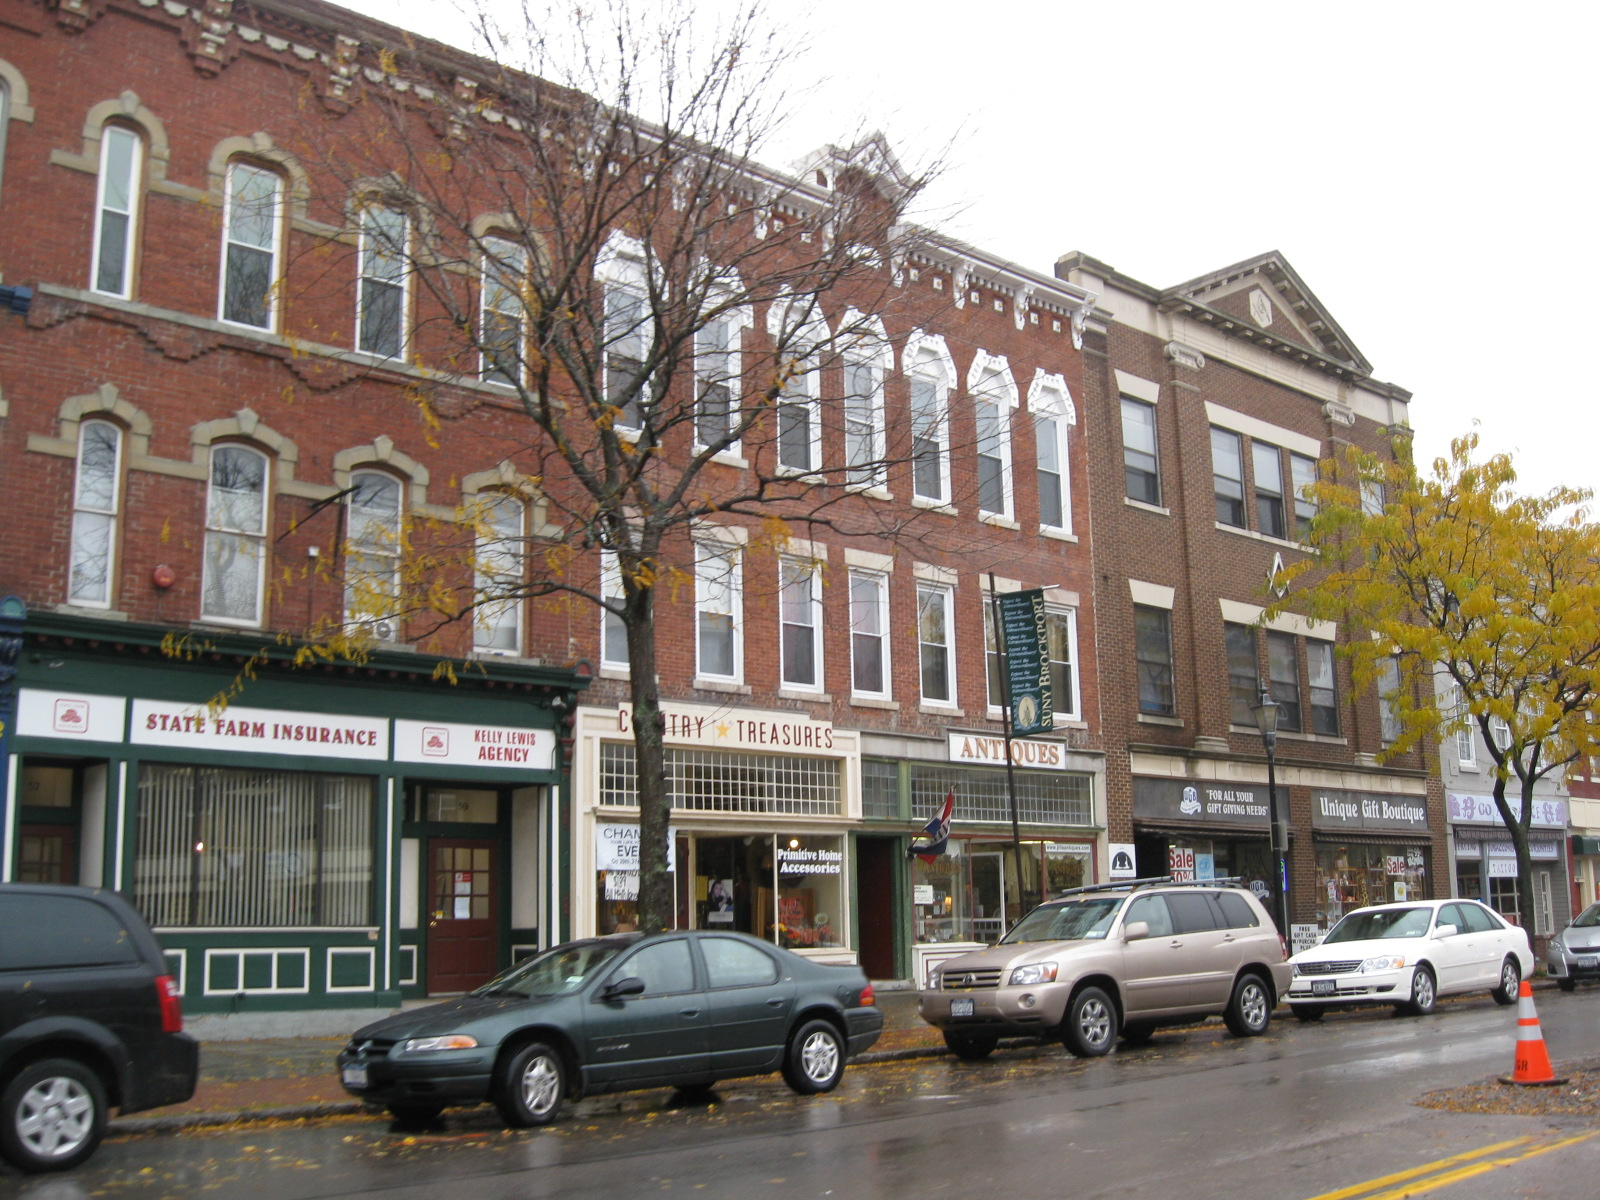 Brockport (NY) United States  City pictures : ... Street Historic District Brockport NY Oct 09 Wikimedia Commons